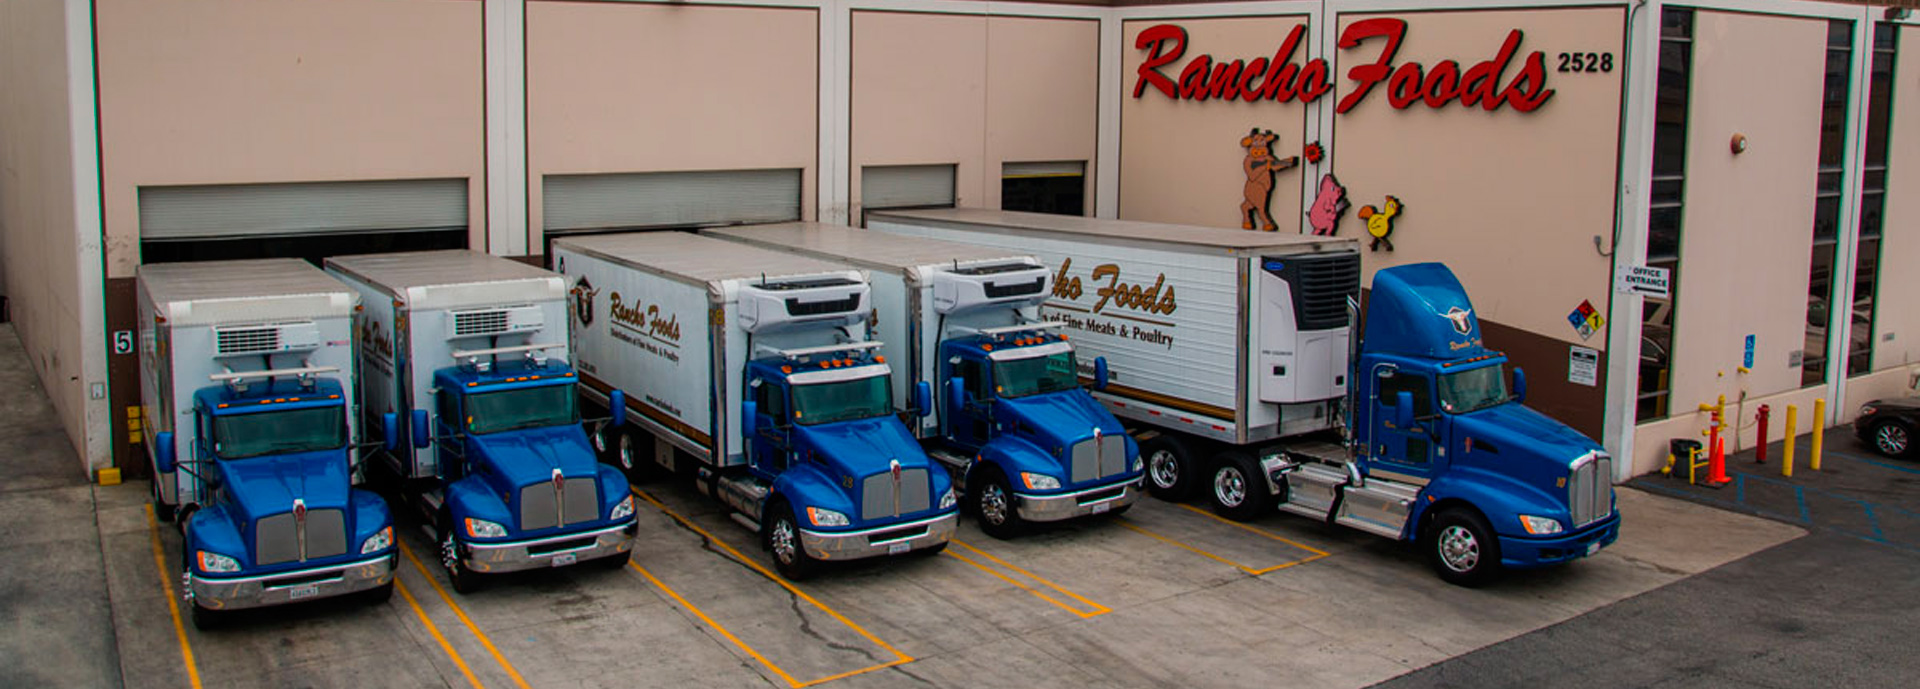 rancho foods